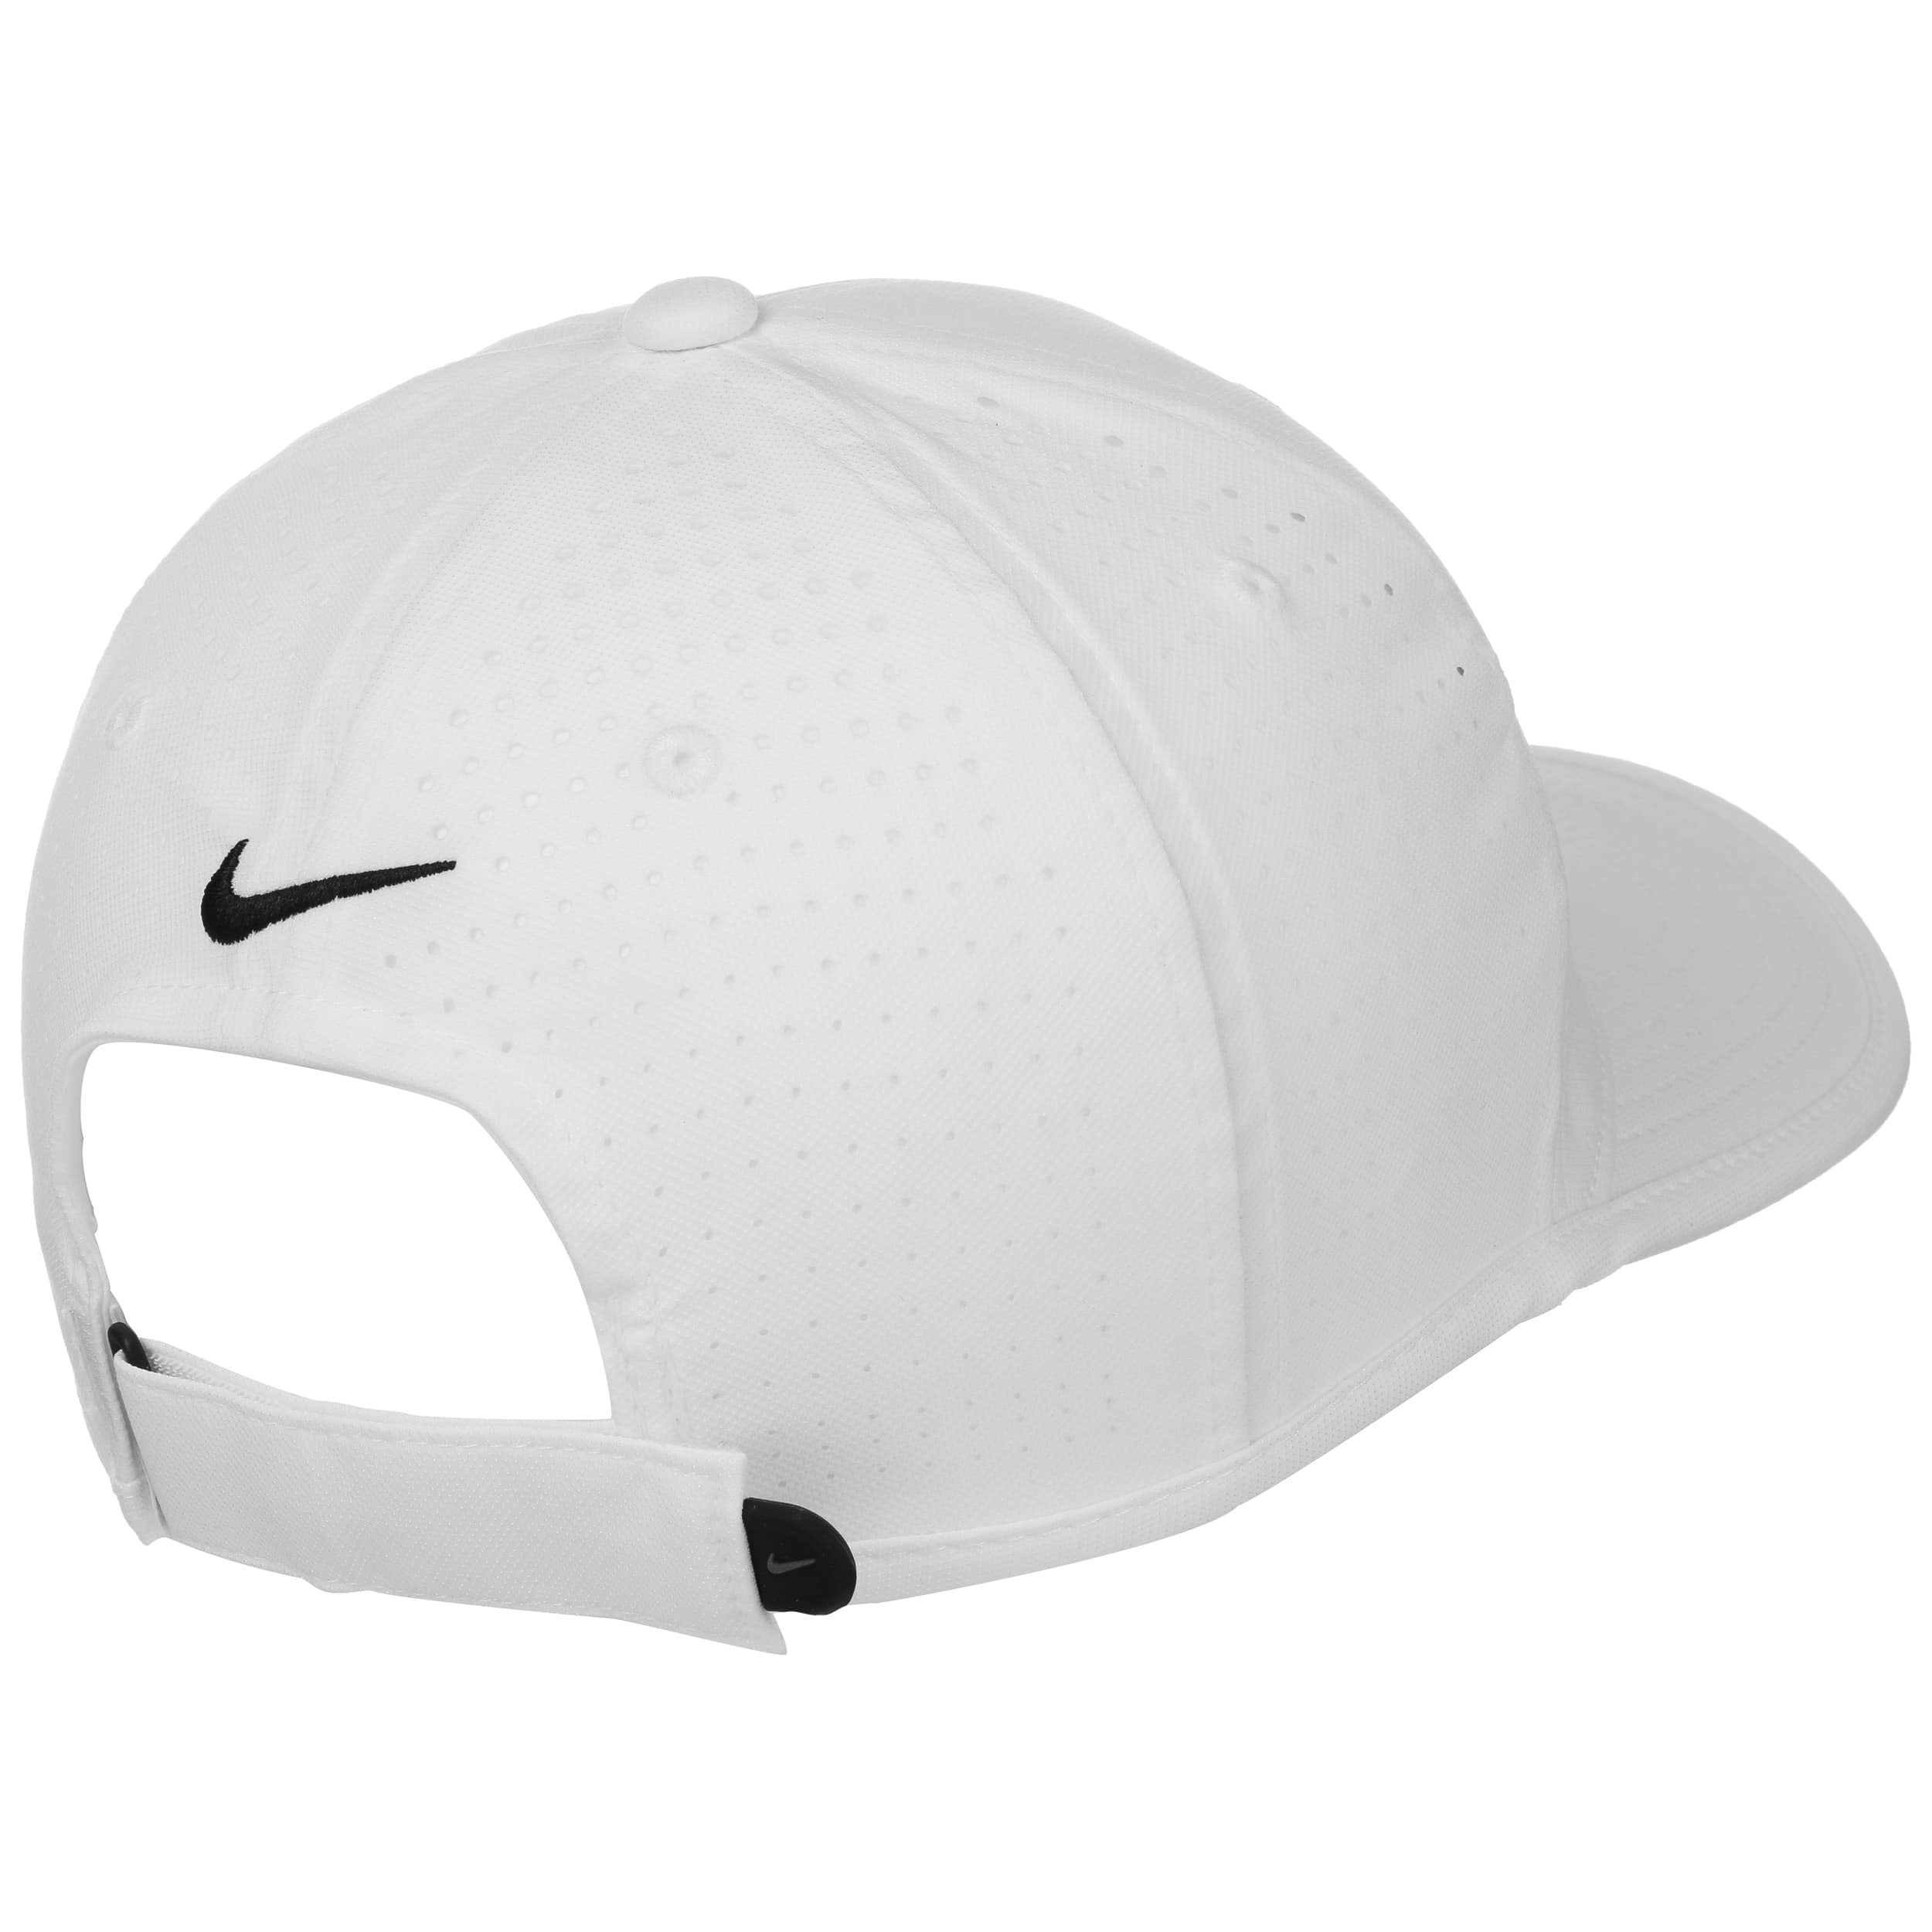 cdf5a160666 Ultralight Tour Perforation Cap by Nike, EUR 34,99 --> Hoeden ...